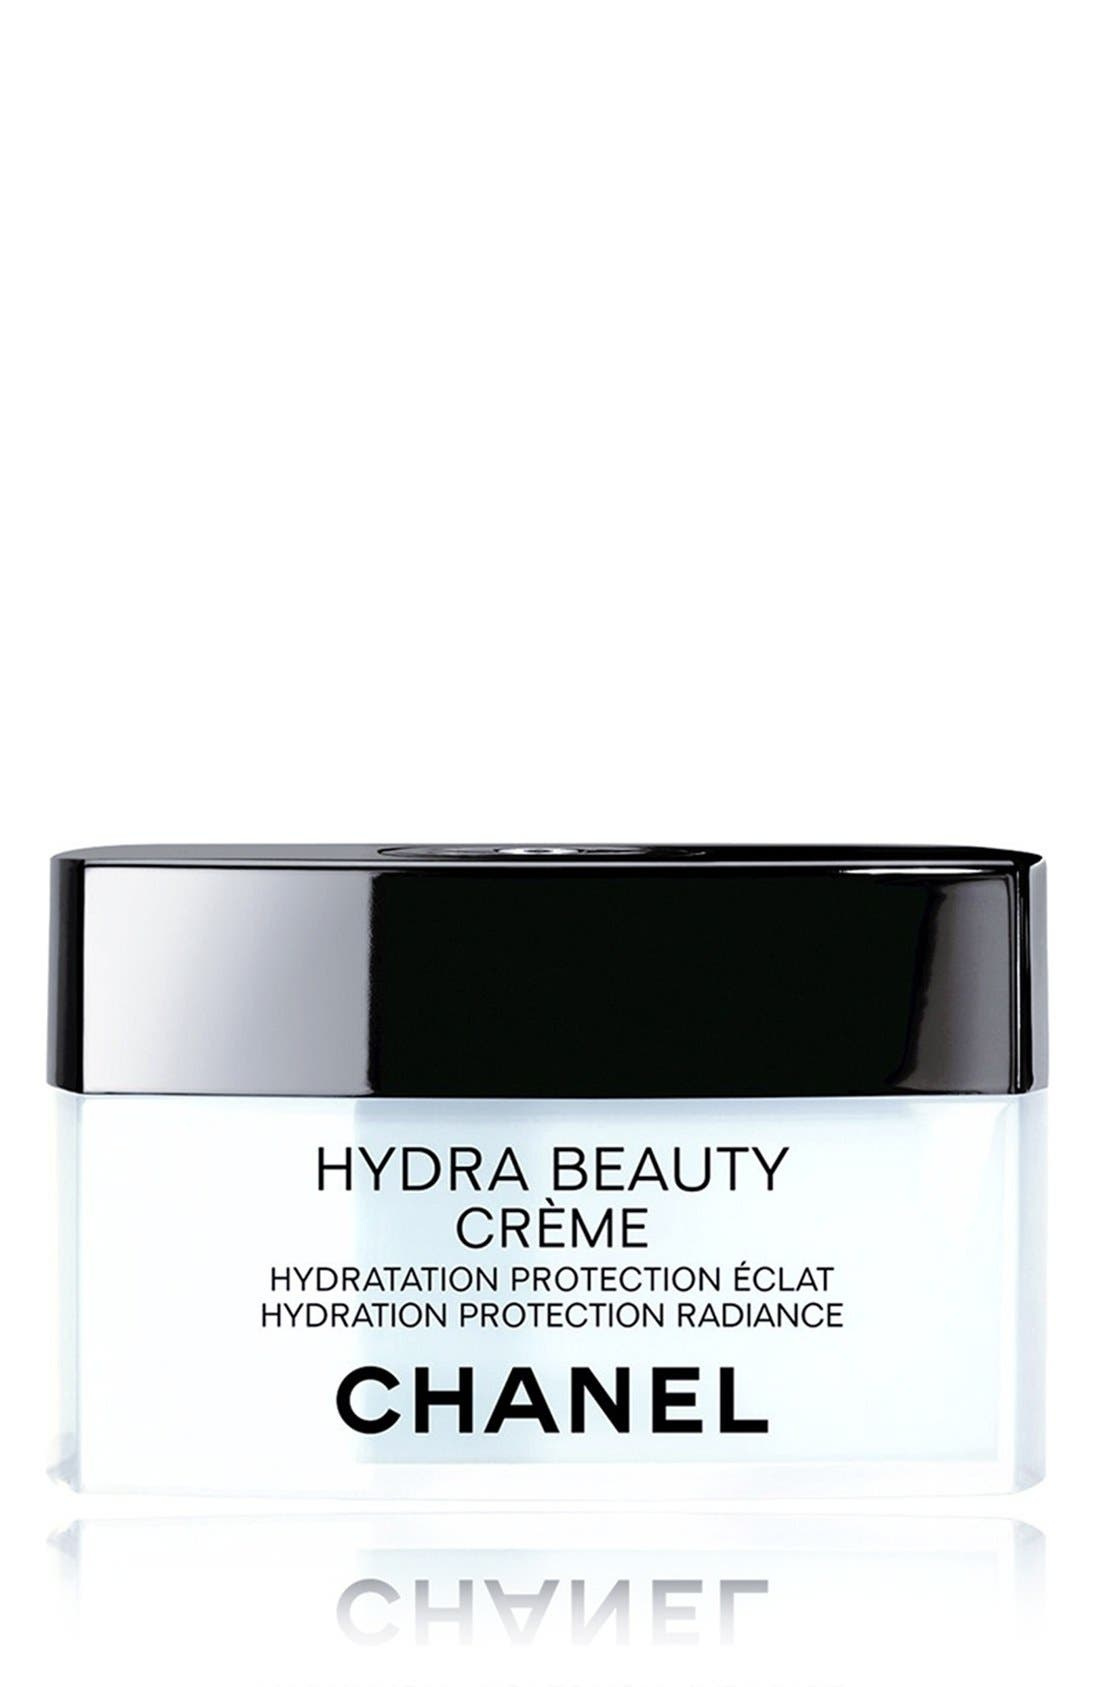 CHANEL HYDRA BEAUTY CRÈME<br />Hydration Protection Radiance, Main, color, NO COLOR